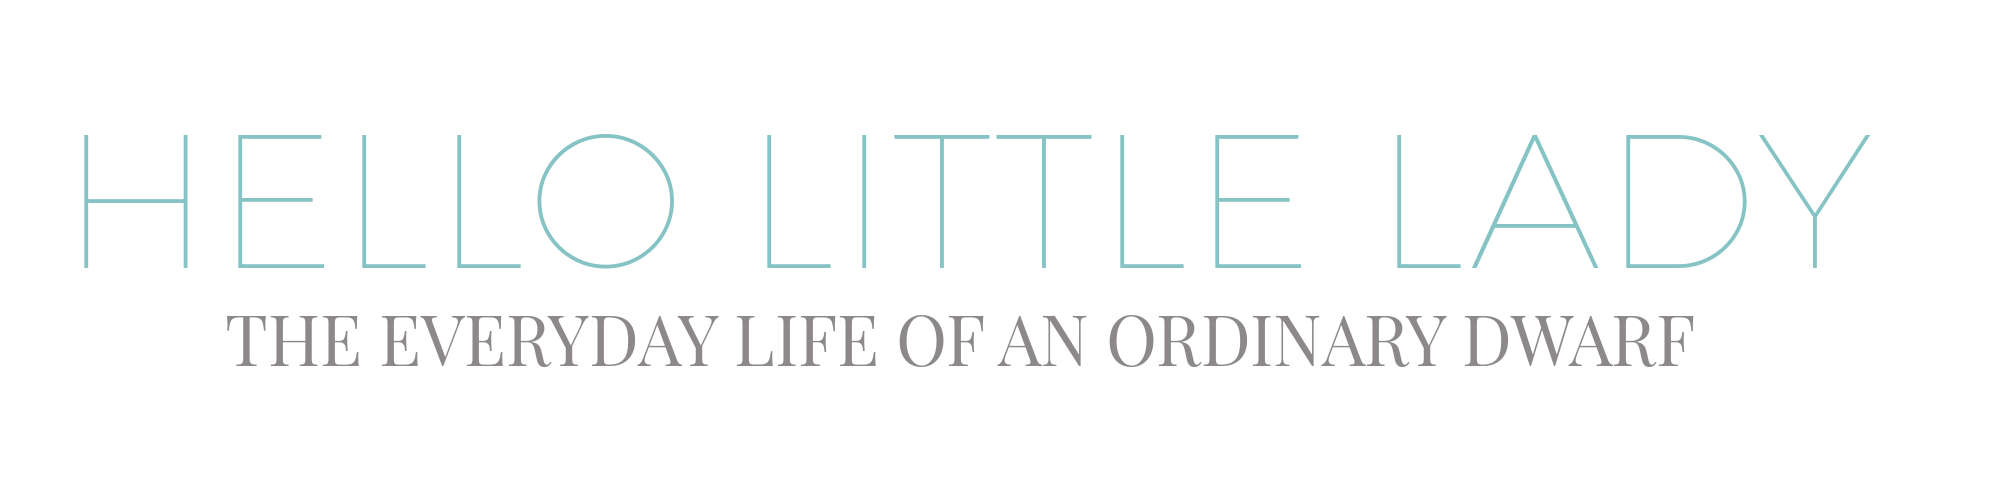 Hello Little Lady - the everyday life of an ordinary dwarf